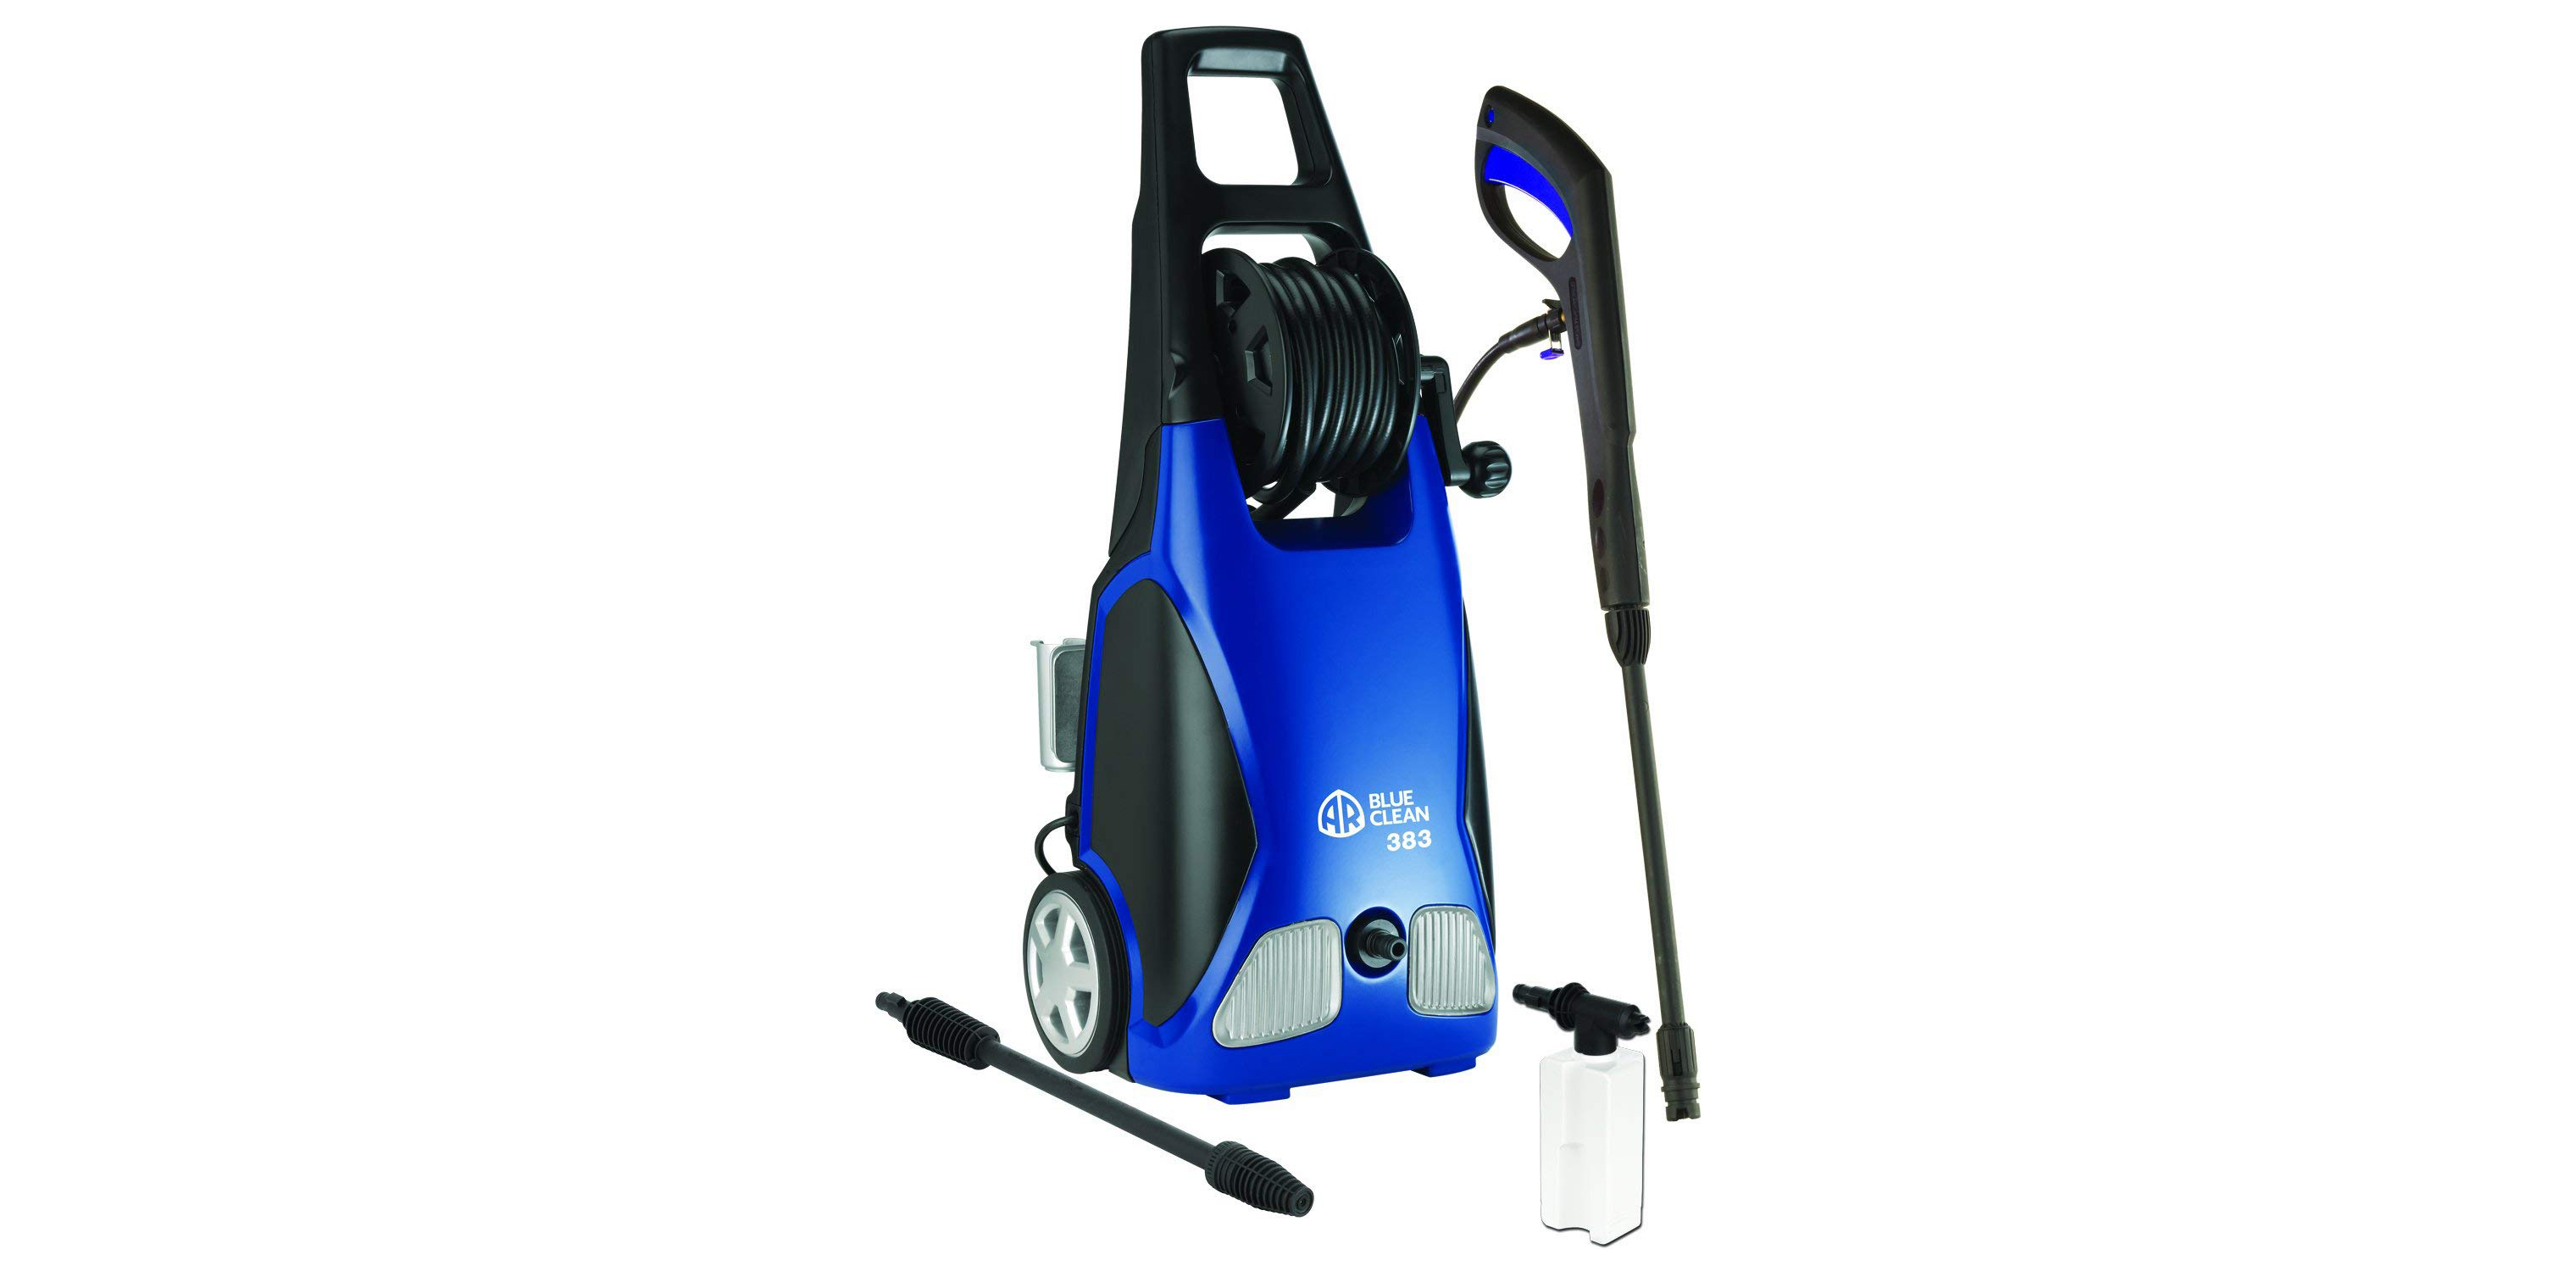 Electric Pressure Washers, Nest Thermostats and more are on sale in today's Green Deals